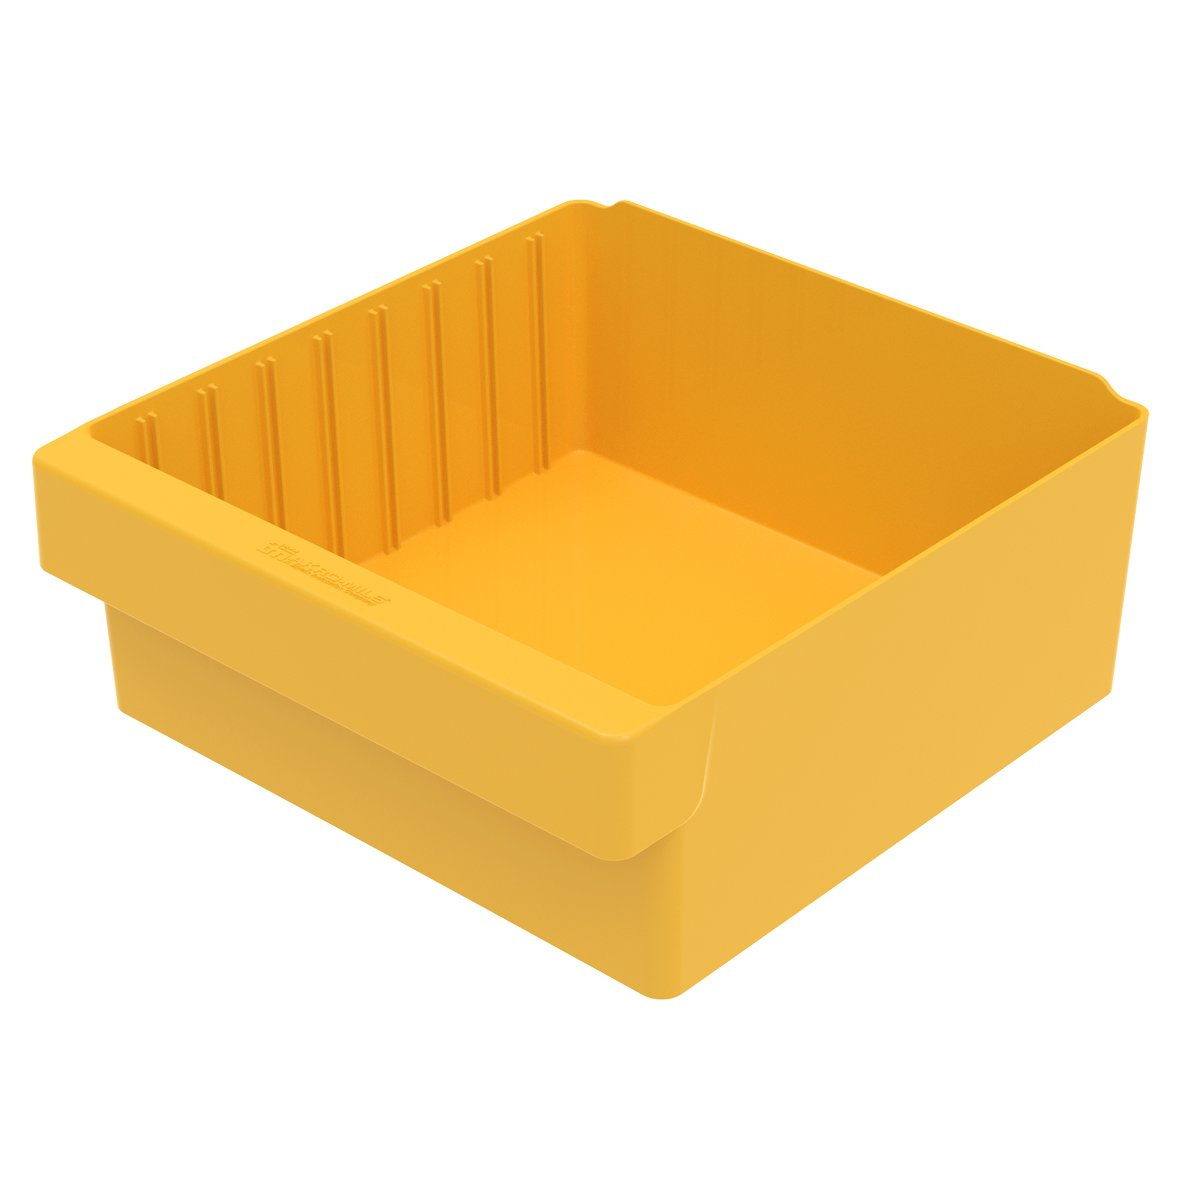 Akro-Mils 31112 11-5/8-Inch L by 11-1/8-Inch W by 4-5/8-Inch H AkroDrawer Plastic Storage Drawer, Yellow, Case of 4